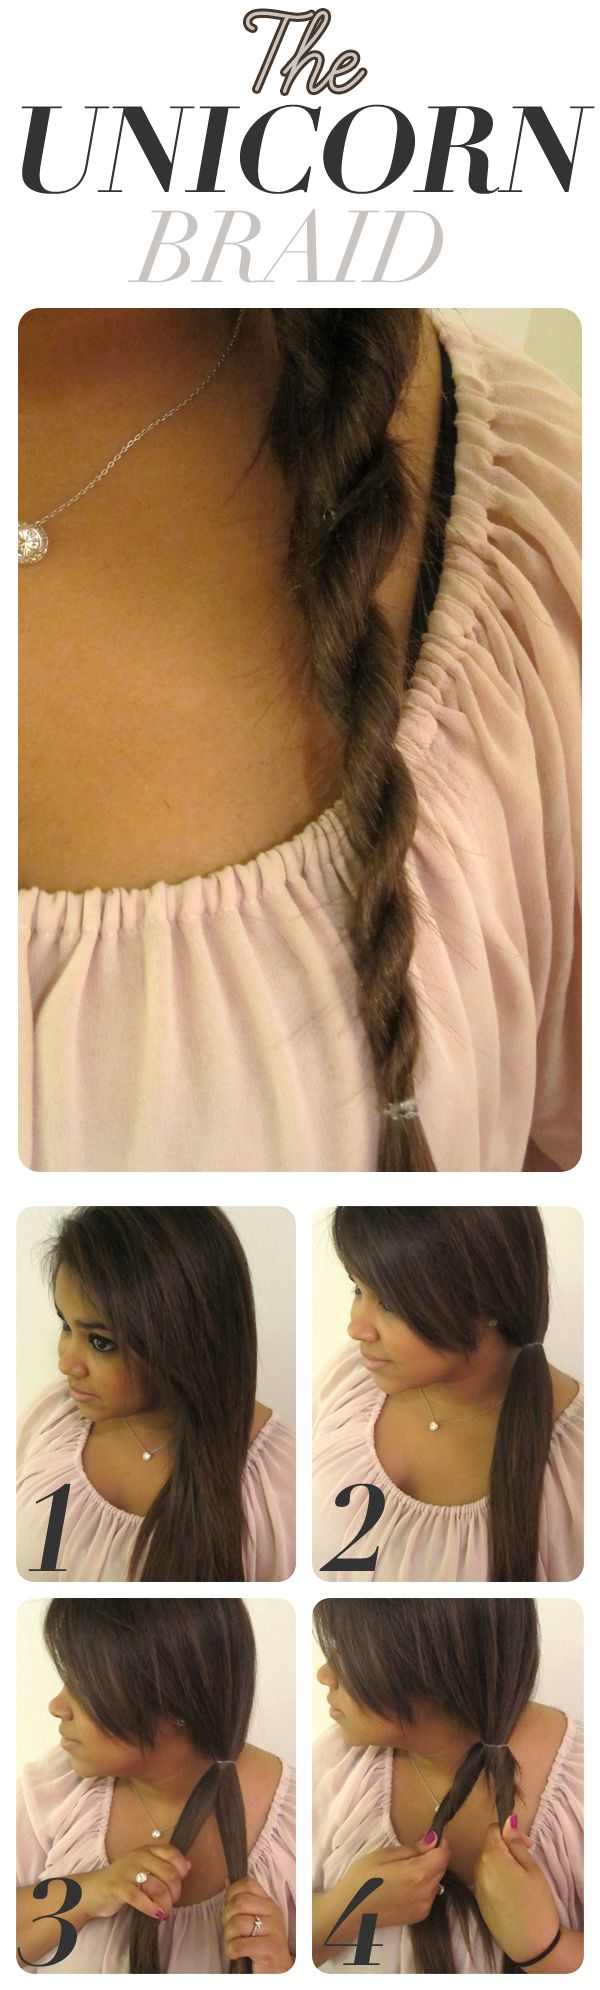 Unicorn braid: Hairstyles, Braid Tutorials, Hair Styles, Hair Makeup, Braids, Beauty, Unicorns, Unicorn Braid